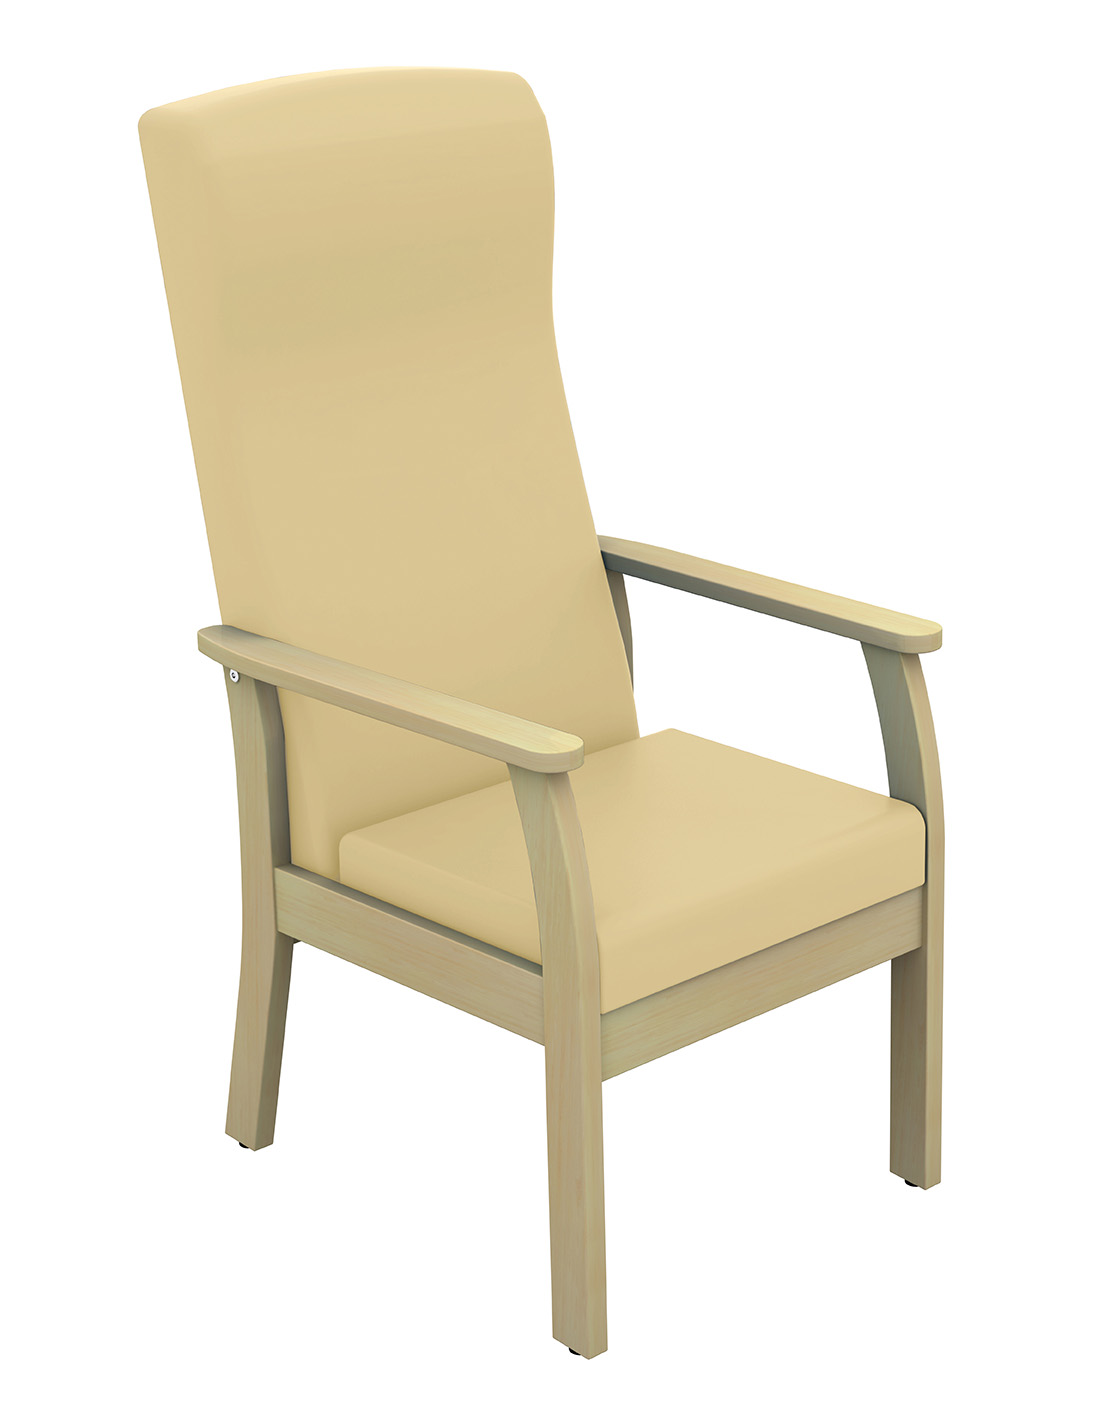 Magnificent Great Value Visitors Waiting Room Chairs Furniture And Theyellowbook Wood Chair Design Ideas Theyellowbookinfo